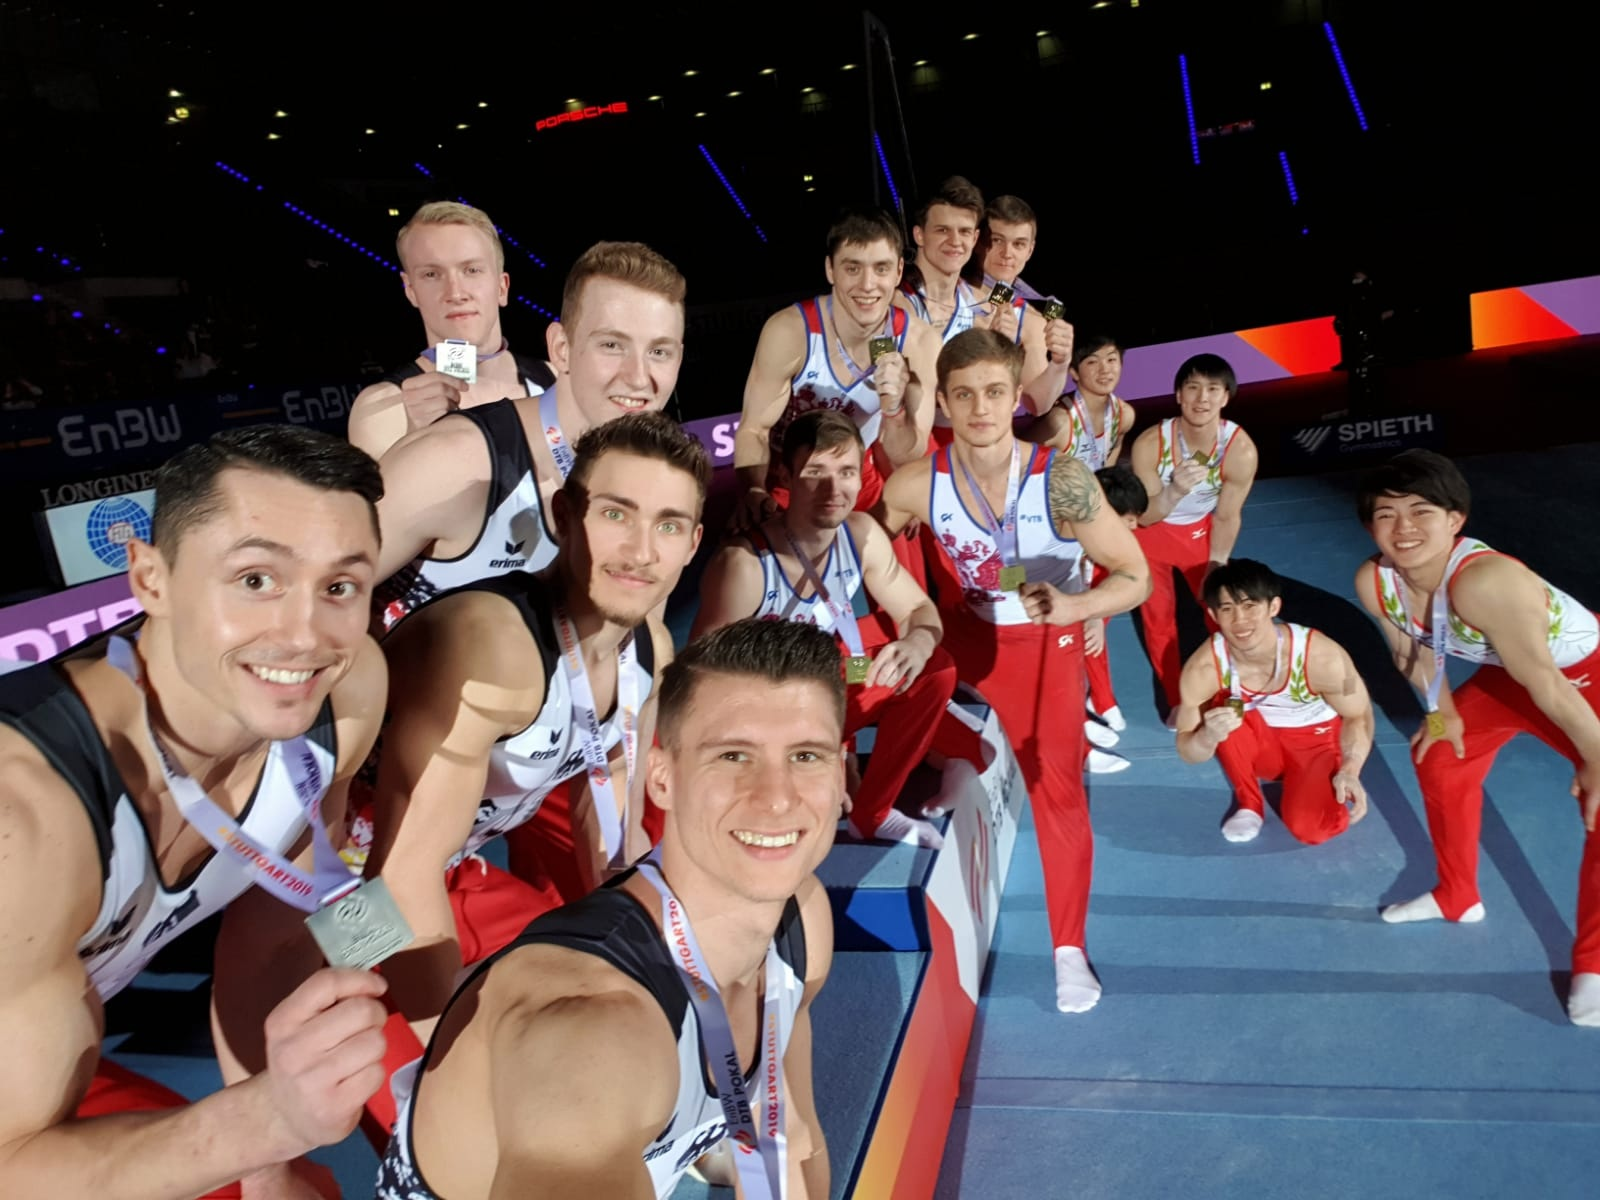 The podium finishers gather for a selfie at the Porsche Arena in Stuttgart. Photo courtesy EnBW DTB Pokal.